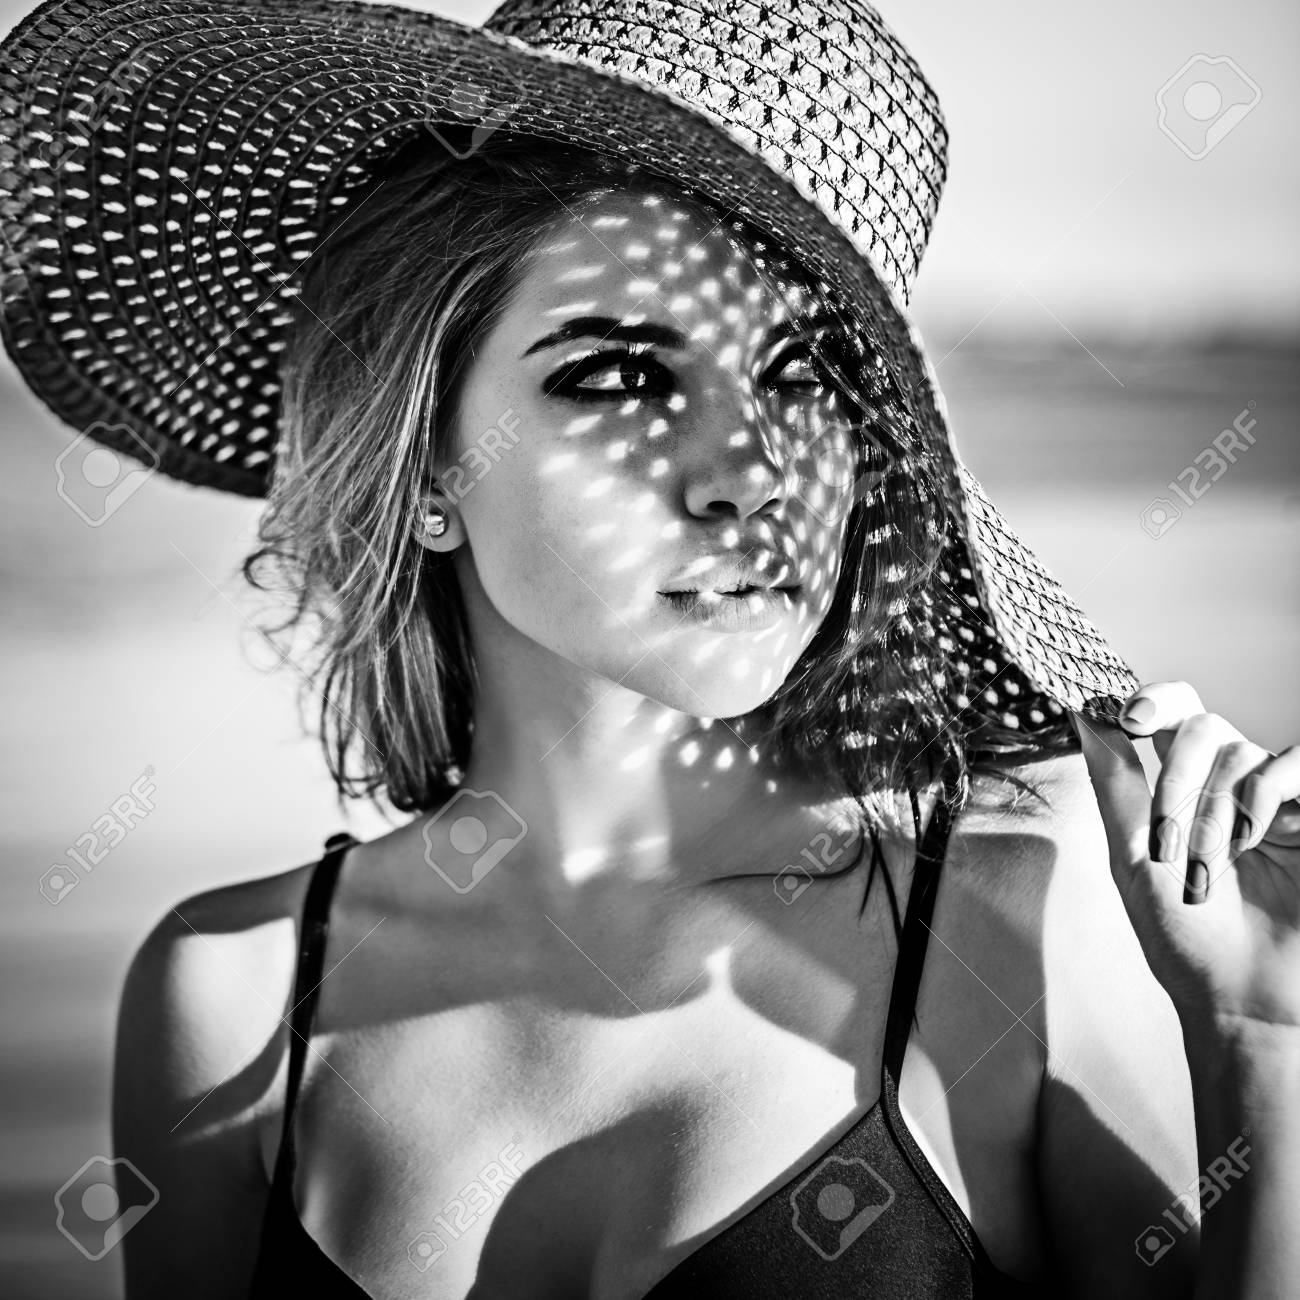 The concept of summer vacation black and white photography